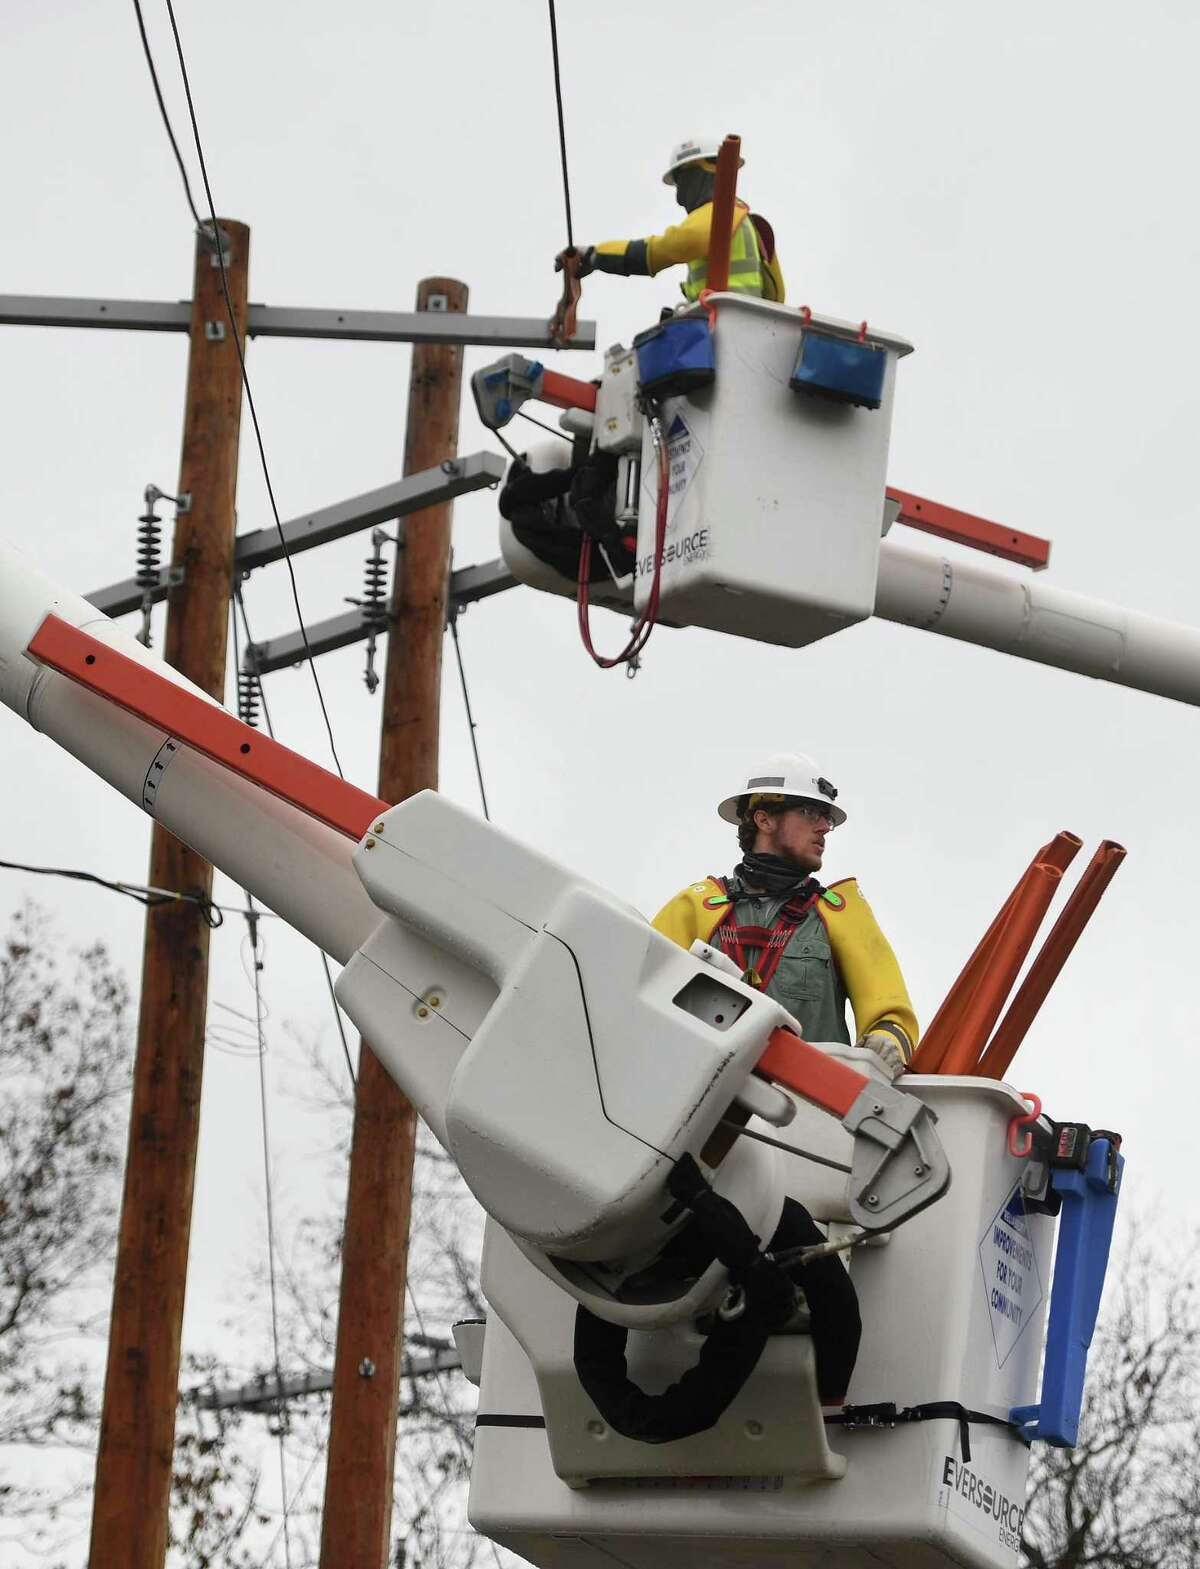 Eversource Energy workers demonstrate the steps involved in power restoration at the company's training site in Berlin, Conn. on Wednesday, October 28, 2020.